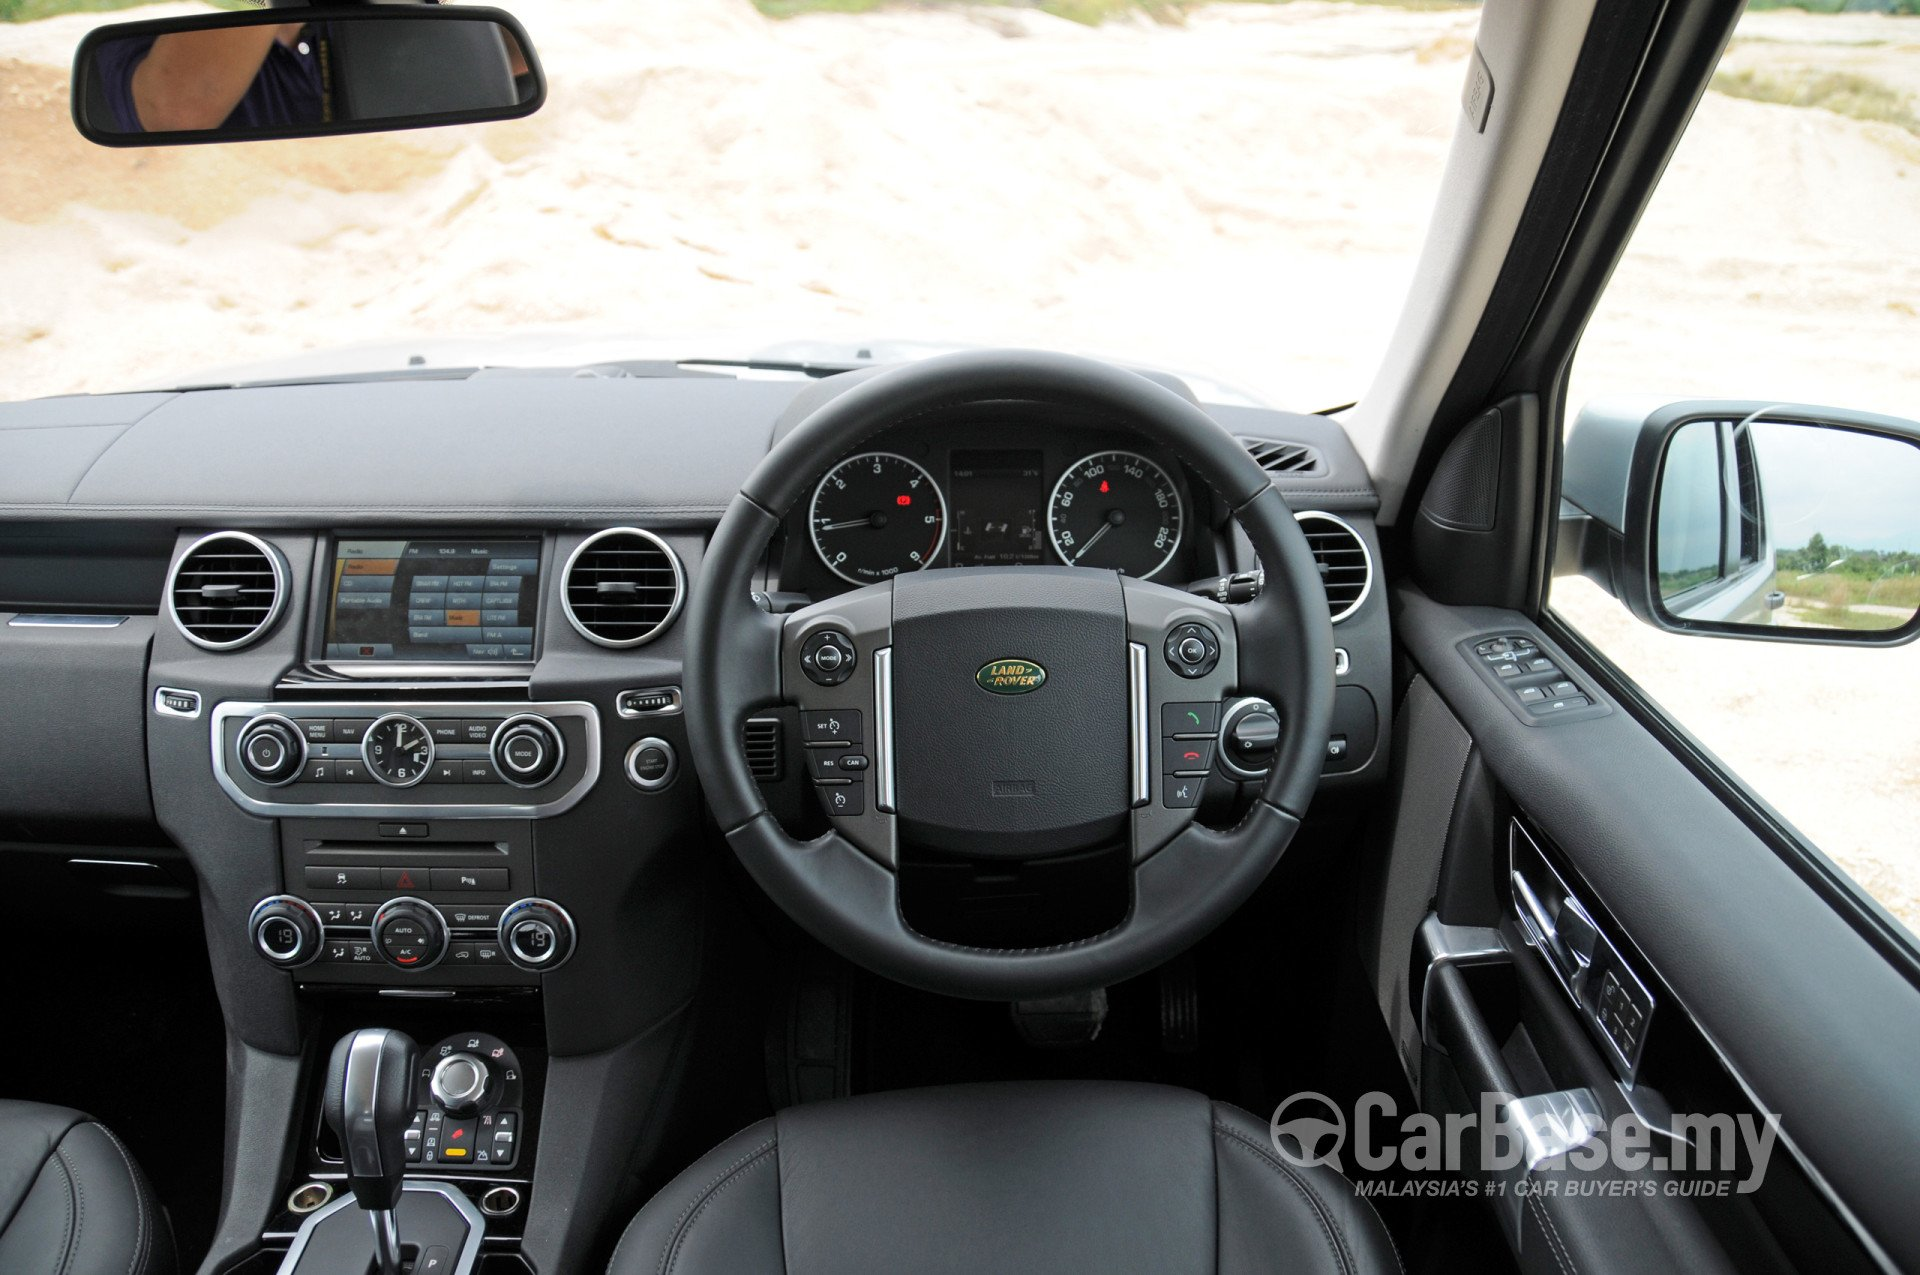 Land Rover Discovery 4 L319 Facelift (2010) Interior Image ...